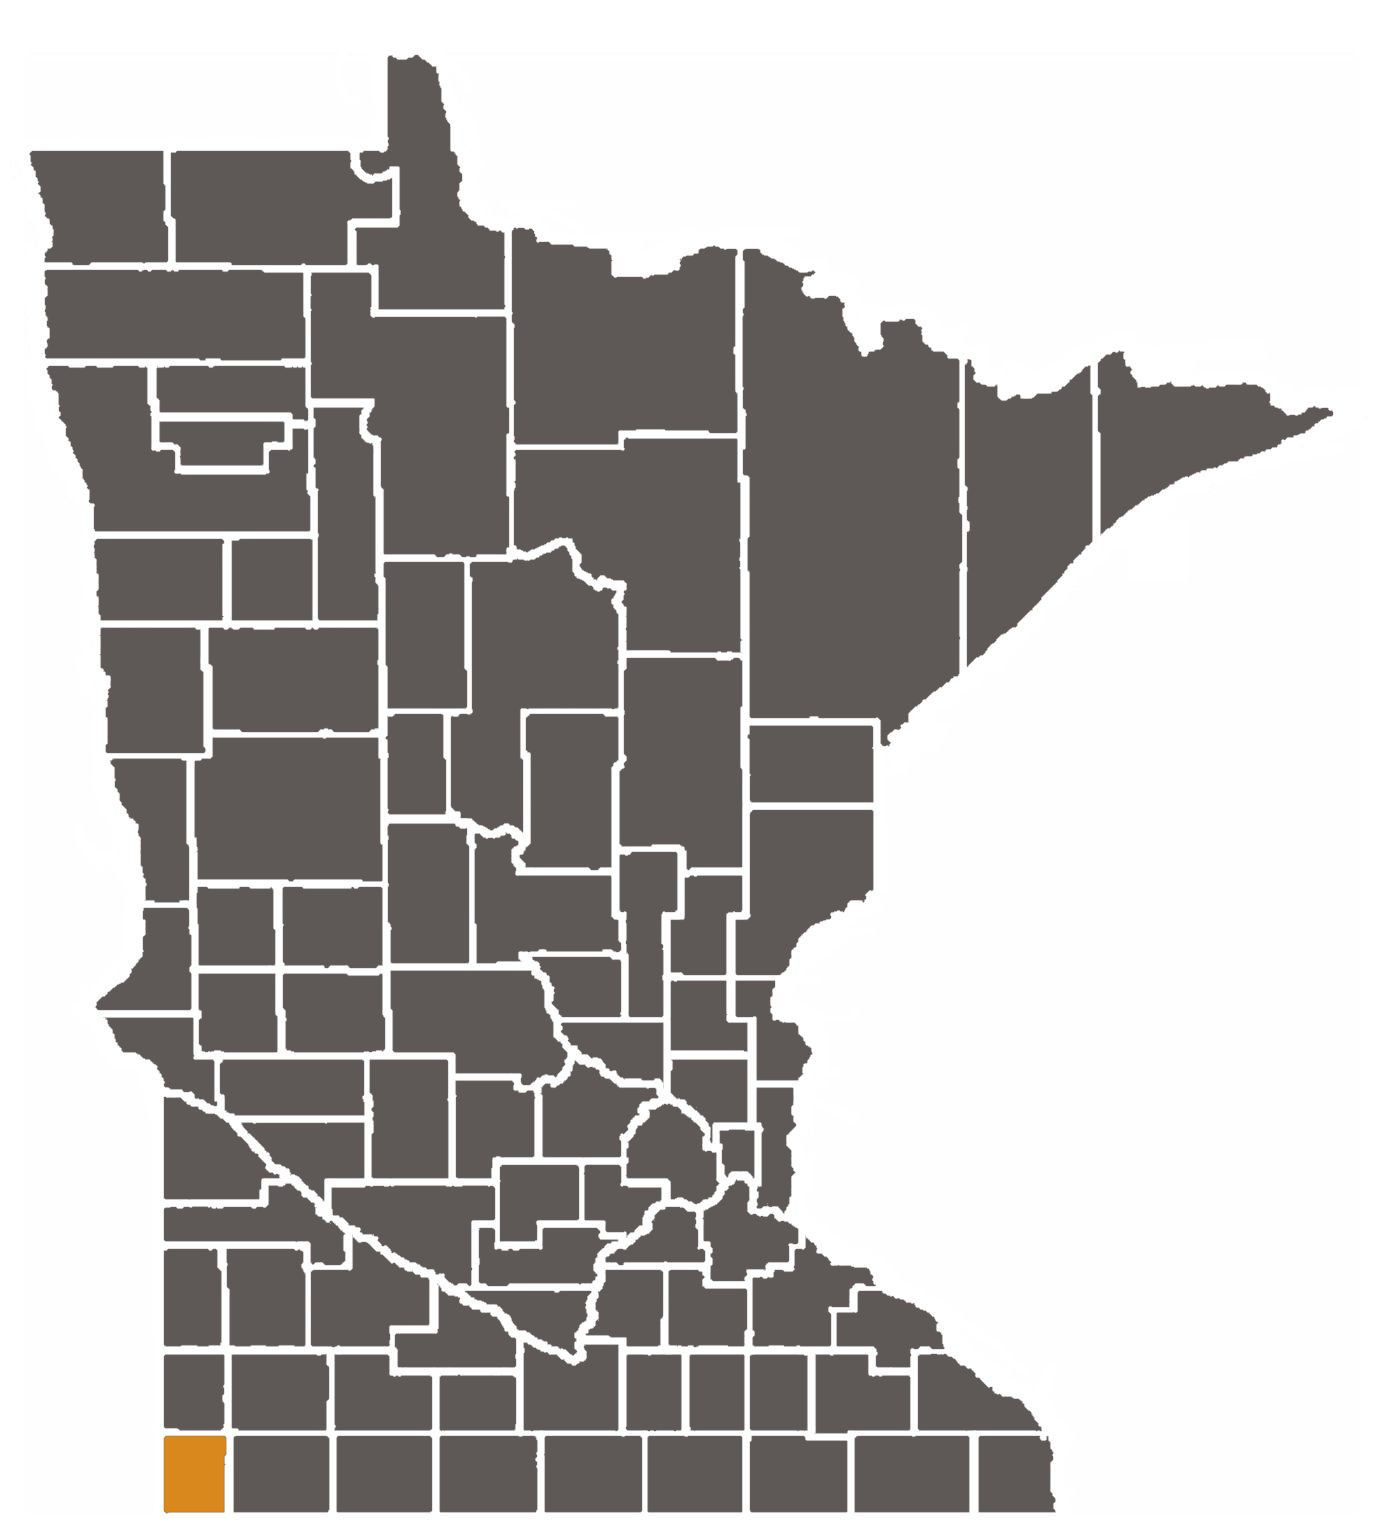 Minnesota map with Rock County highlighted.